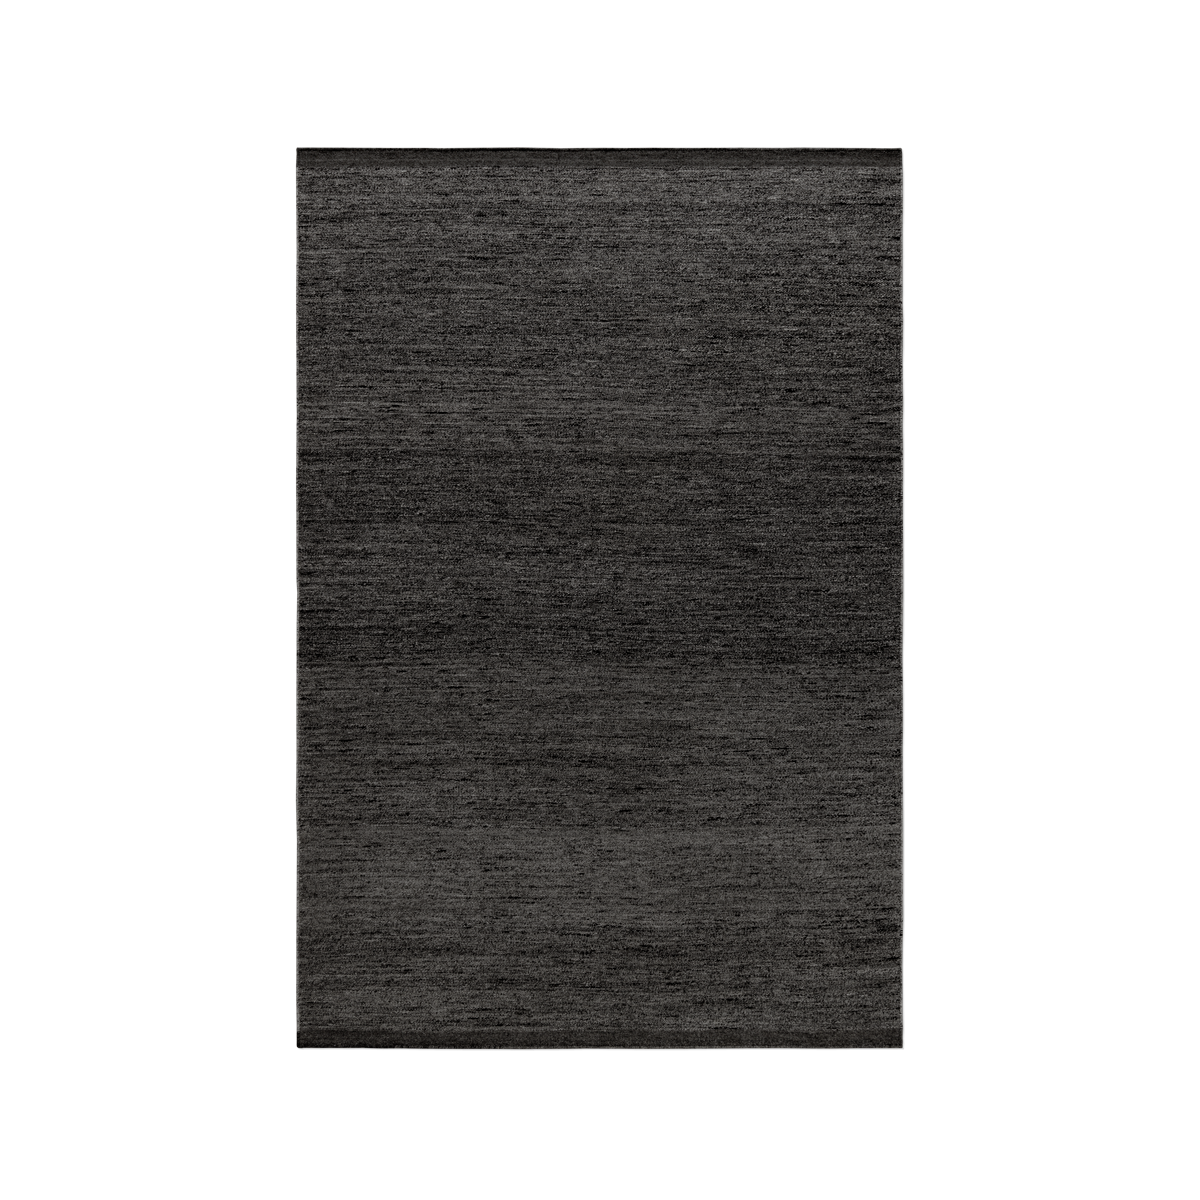 Product image of the flatweave rug Zero in color Anthracite Mix. The rug has two darker borders at the short sides.